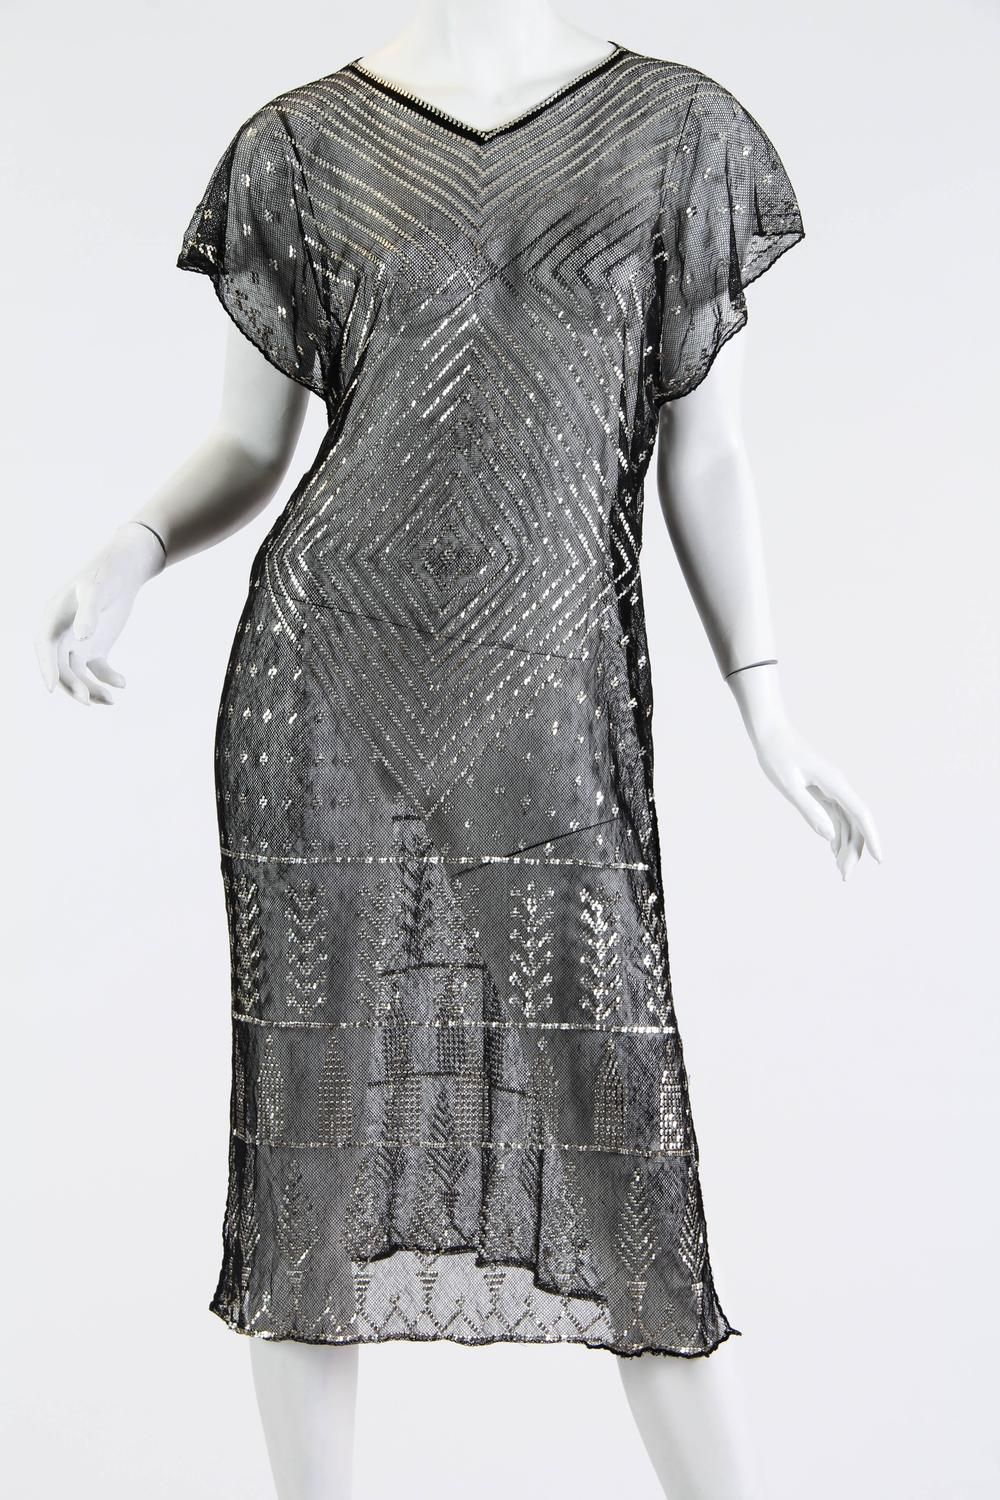 1920s Egyptian Assuit Metal and Cotton Net Dress. Hammered silver adorns the cotton net on this piece from the Art Deco era. Egyptian goods were quite in demand and these shawls were a luxury commodity. A lady with added hutzpah had hers made into a dress such as this one. These shawls were traditionally a cream colour and were draped over a bride at her wedding as wedding gifts as they held great monetary value being adorned with the precious metal. Today this tunic interestingly works…